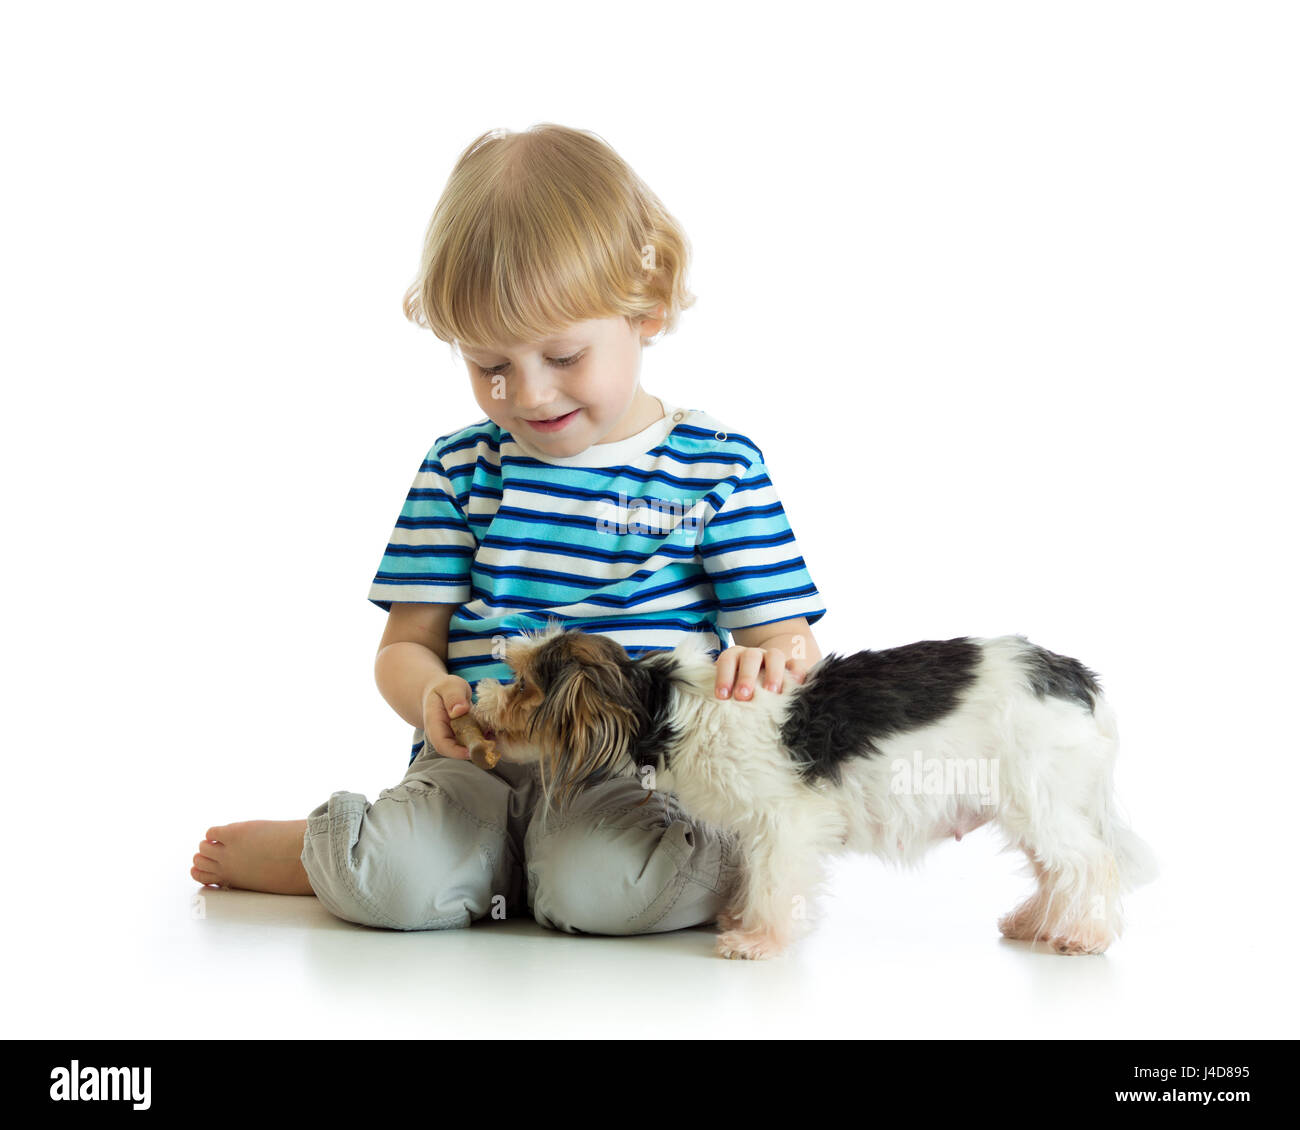 Child boy feeds dog puppy isolated on white - Stock Image